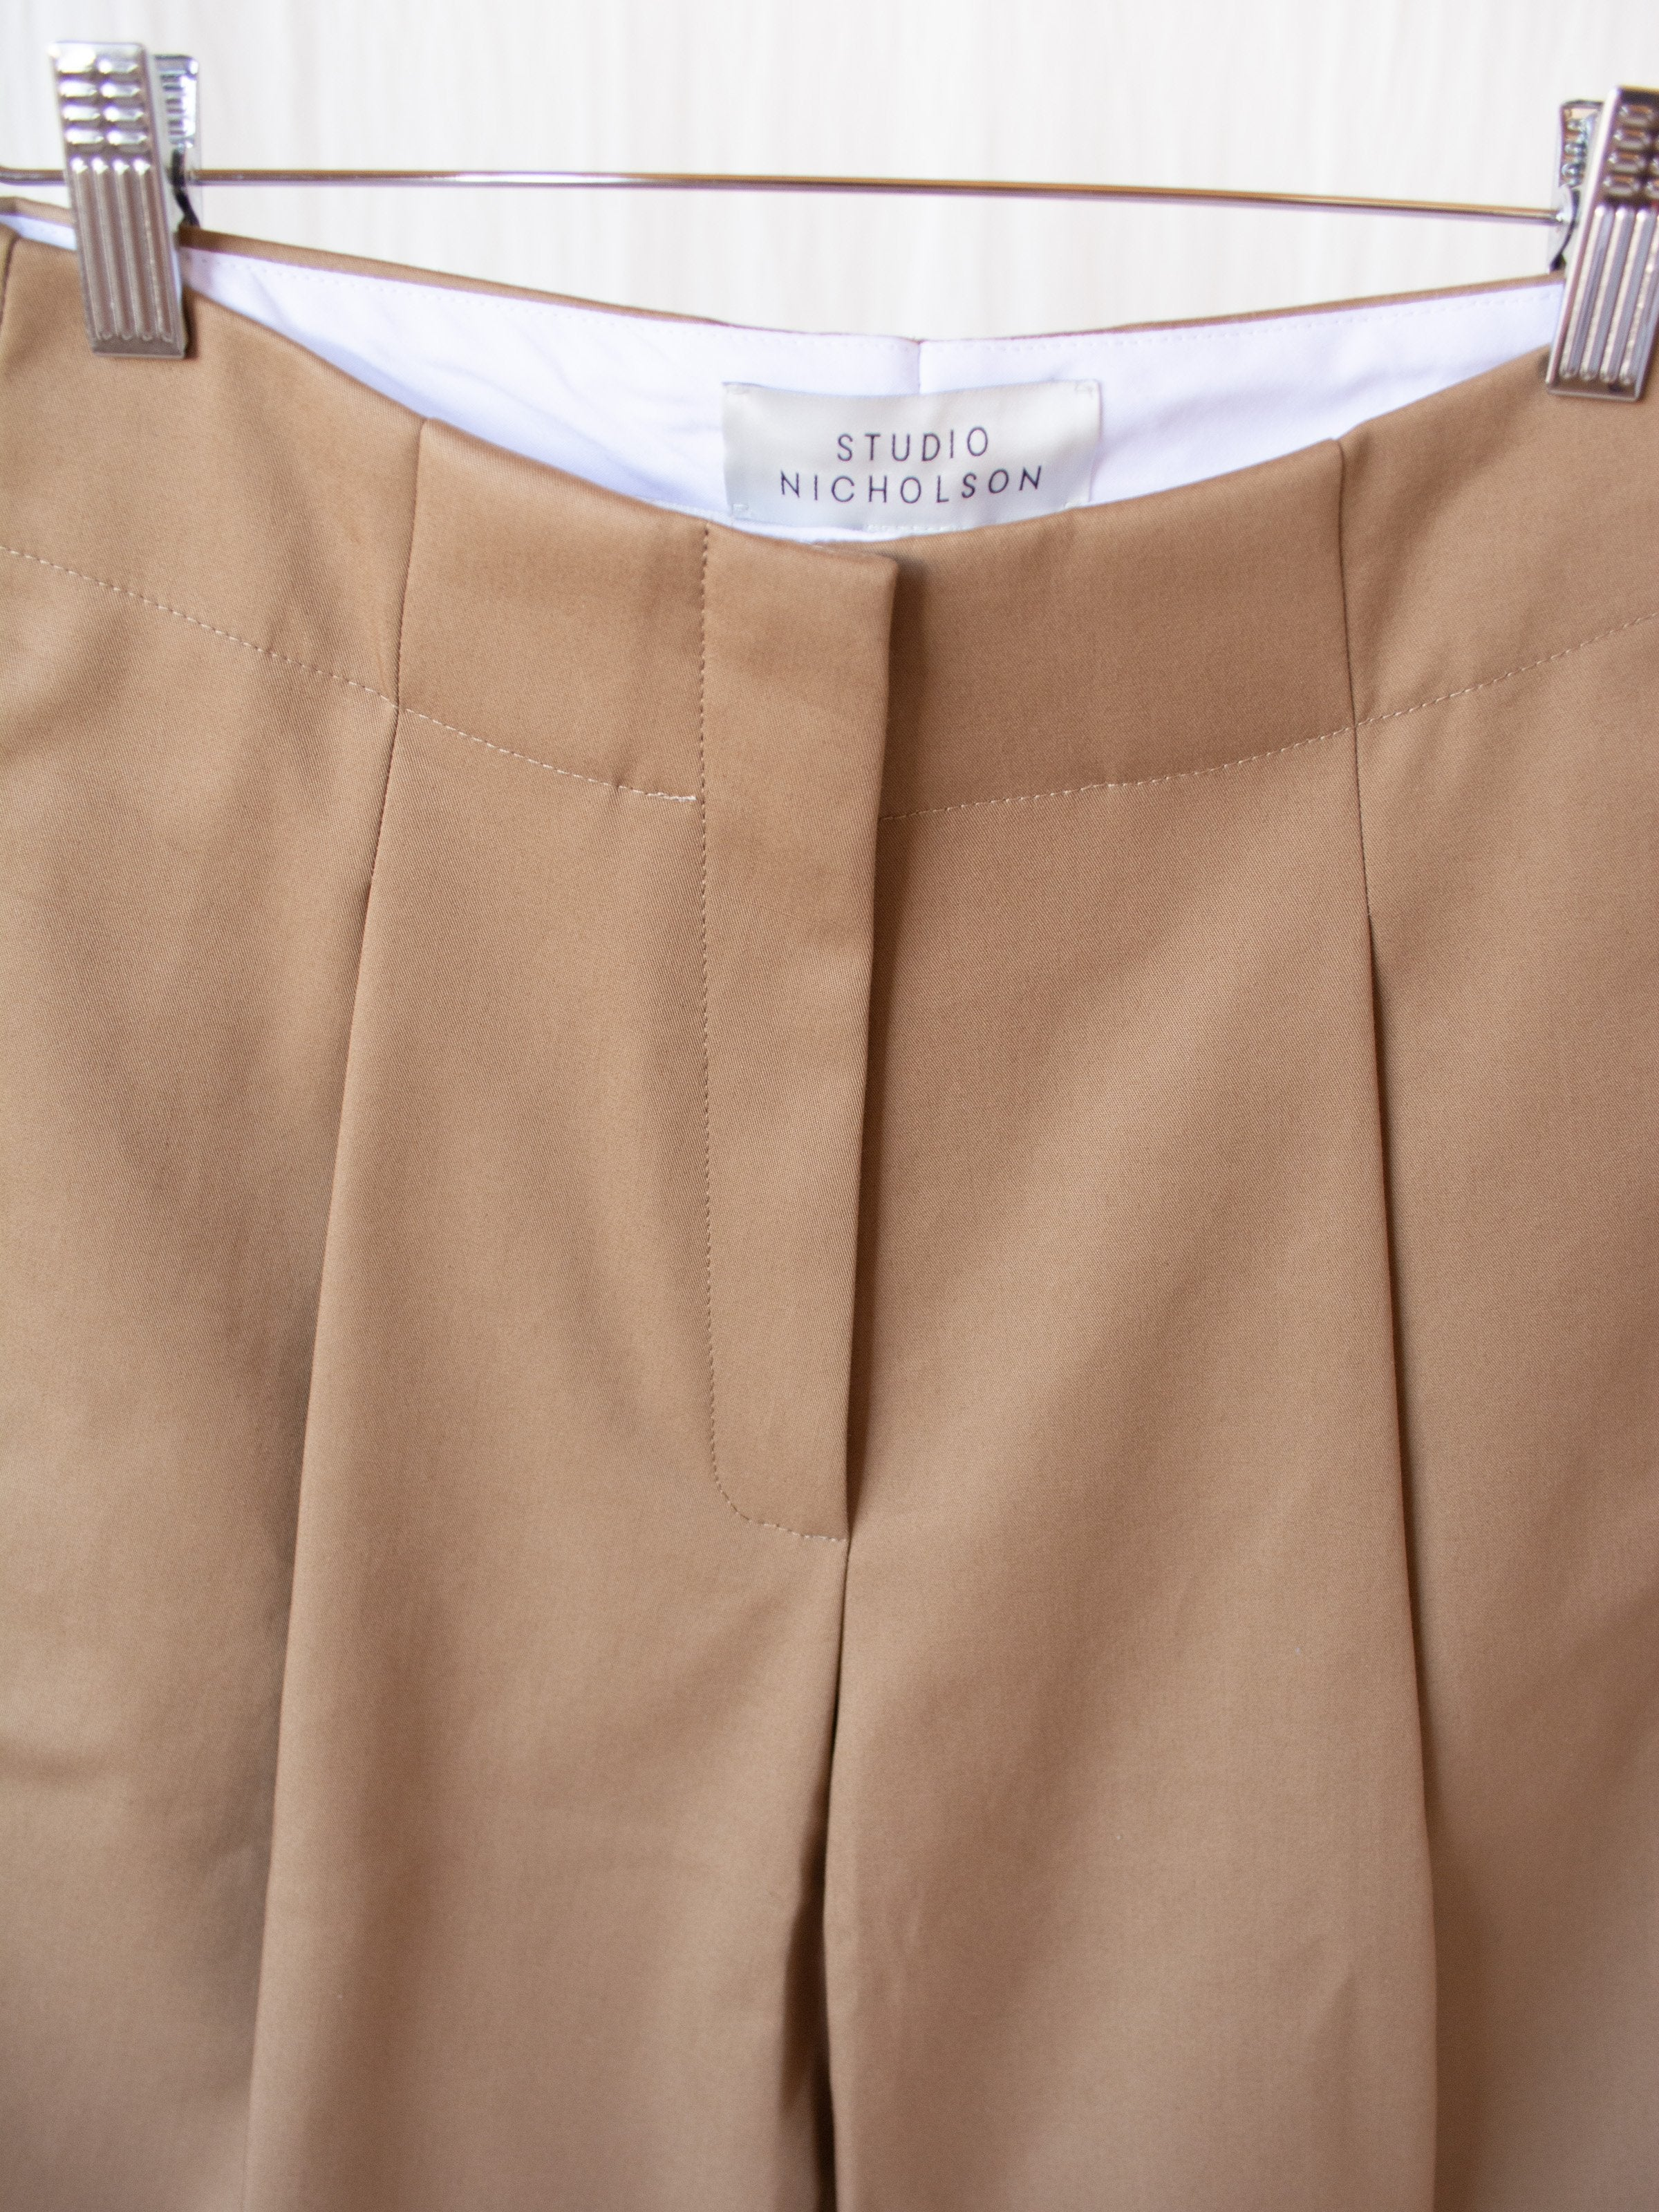 Namu Shop - Studio Nicholson Doriko Volume Pleat Pants - Tan